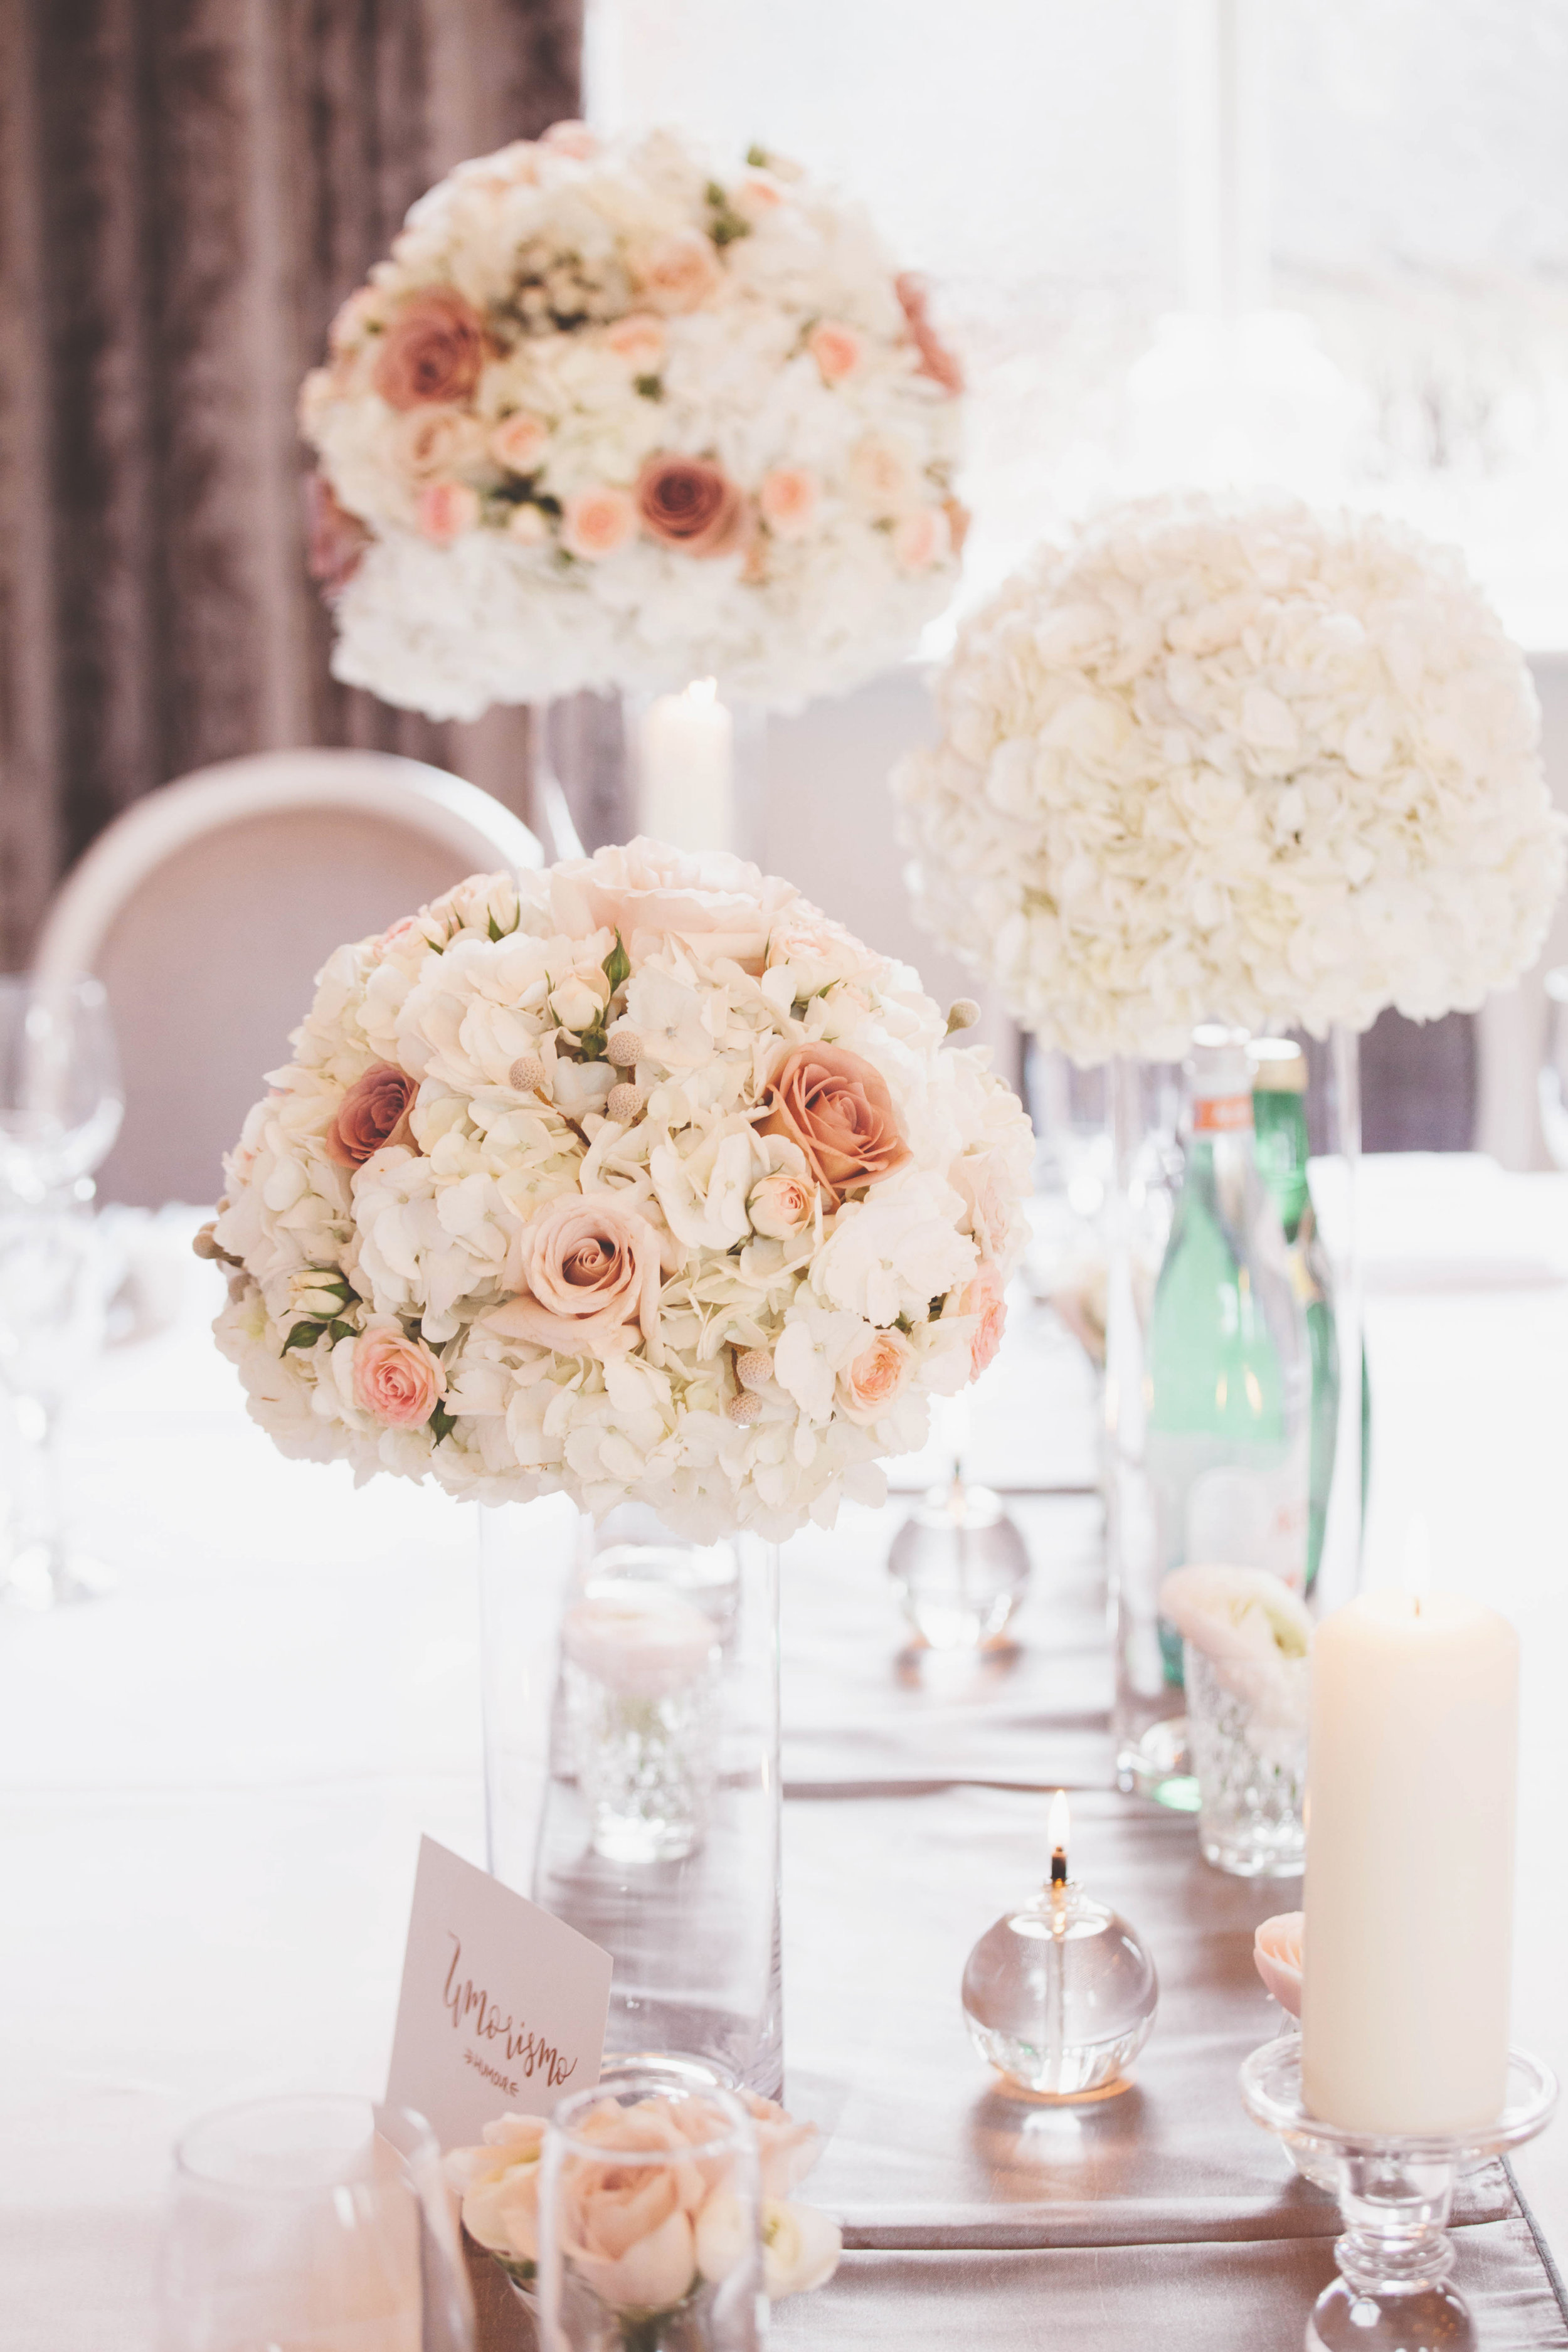 Soft pink and Hydrangea wedding floral table centrepieces at amalfi white, by award winning Derbyshire florist, Tineke